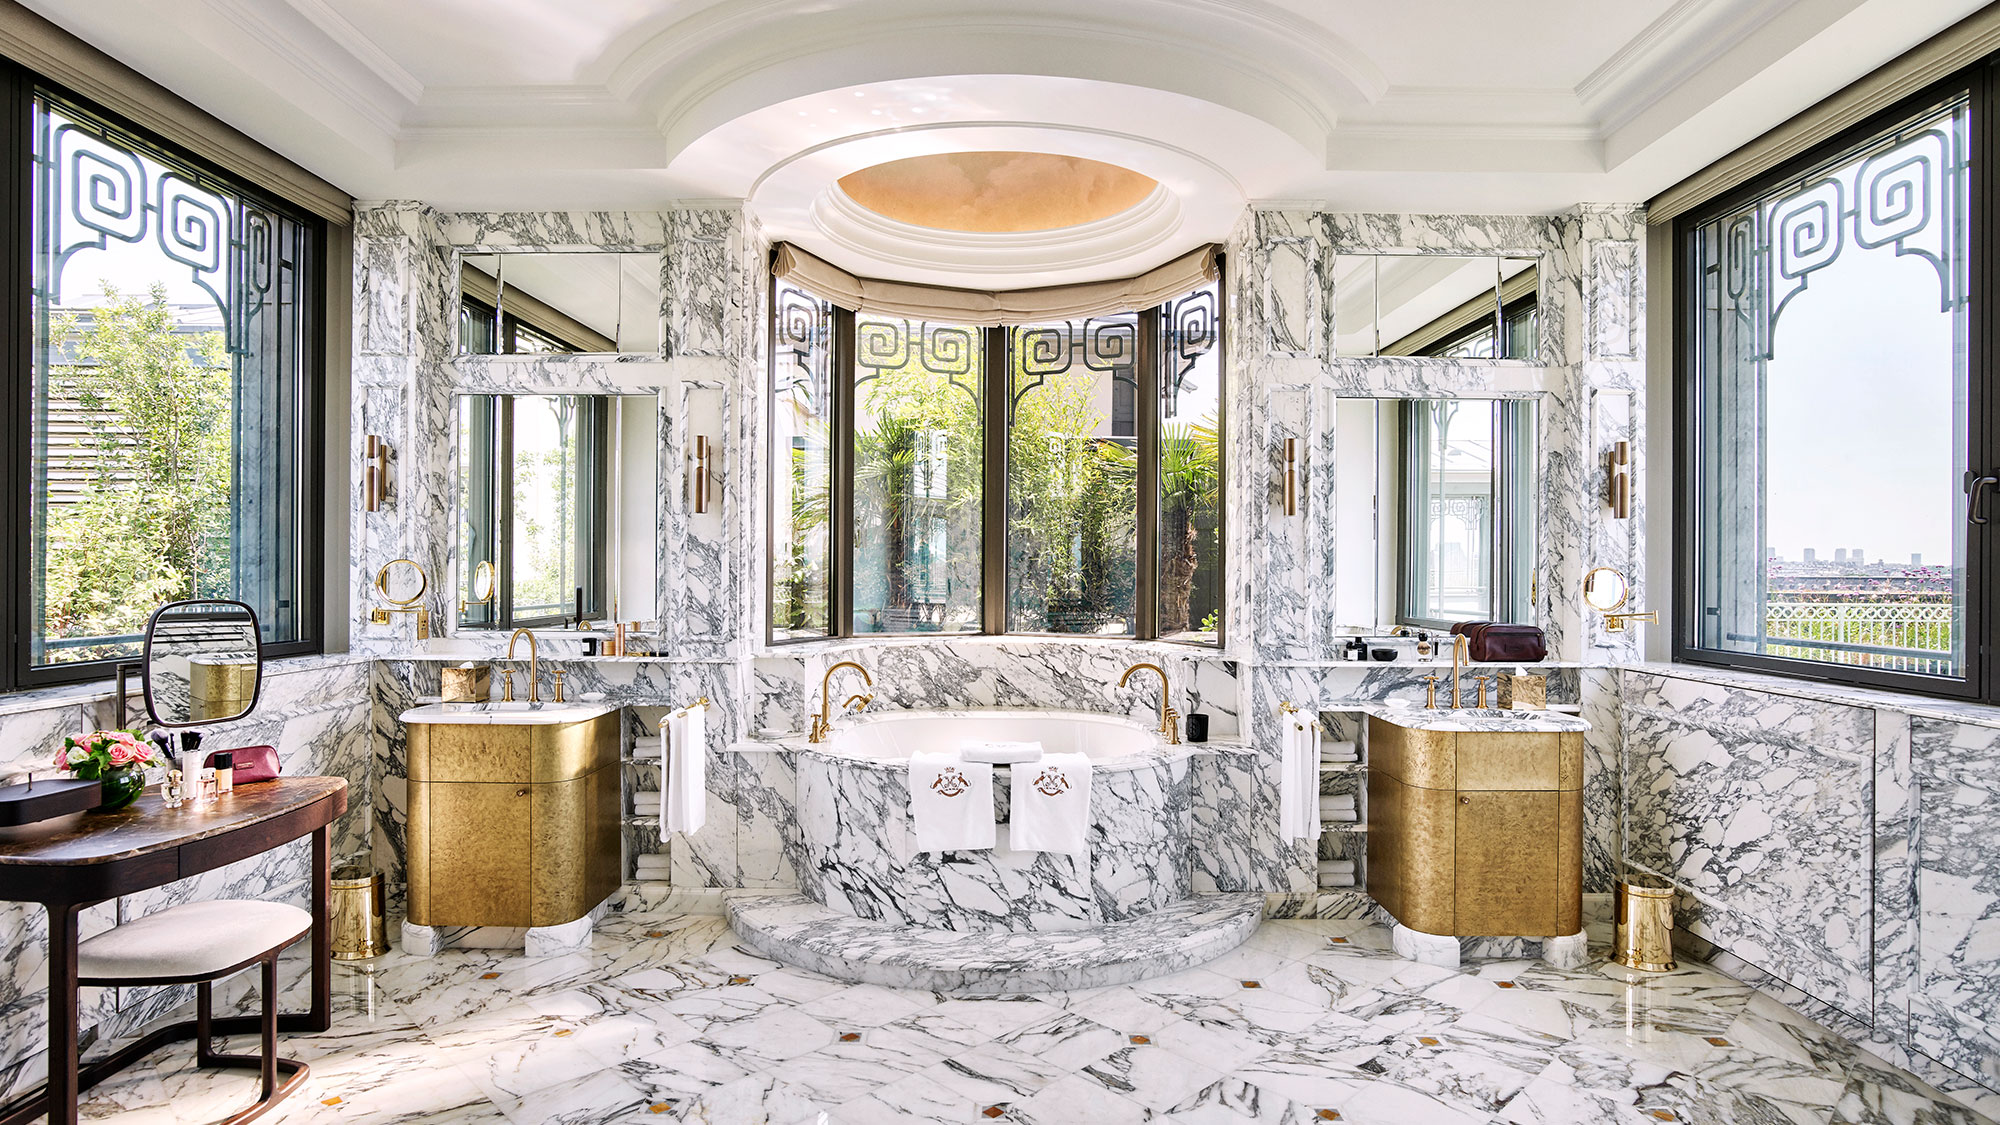 The bathroom at Le Meurice's 7,000-square-foot Belle Etoile penthouse suite, made entirely of marble with views of Montmartre.